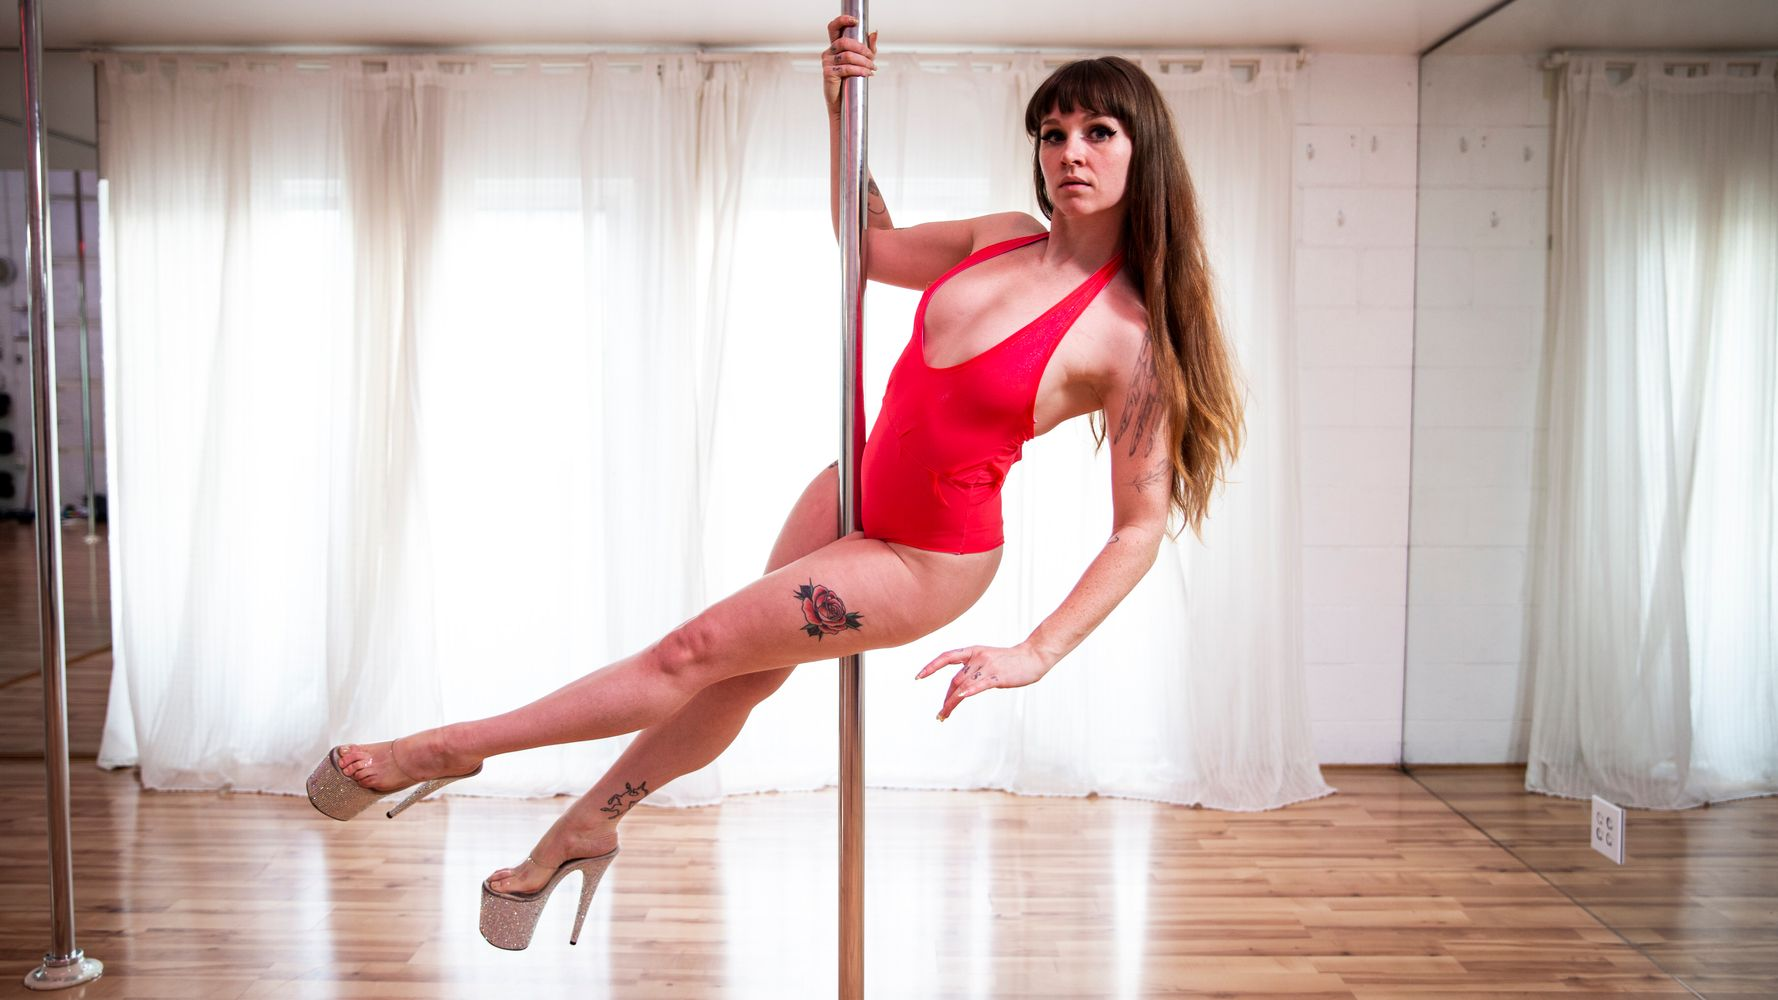 What do strippers like